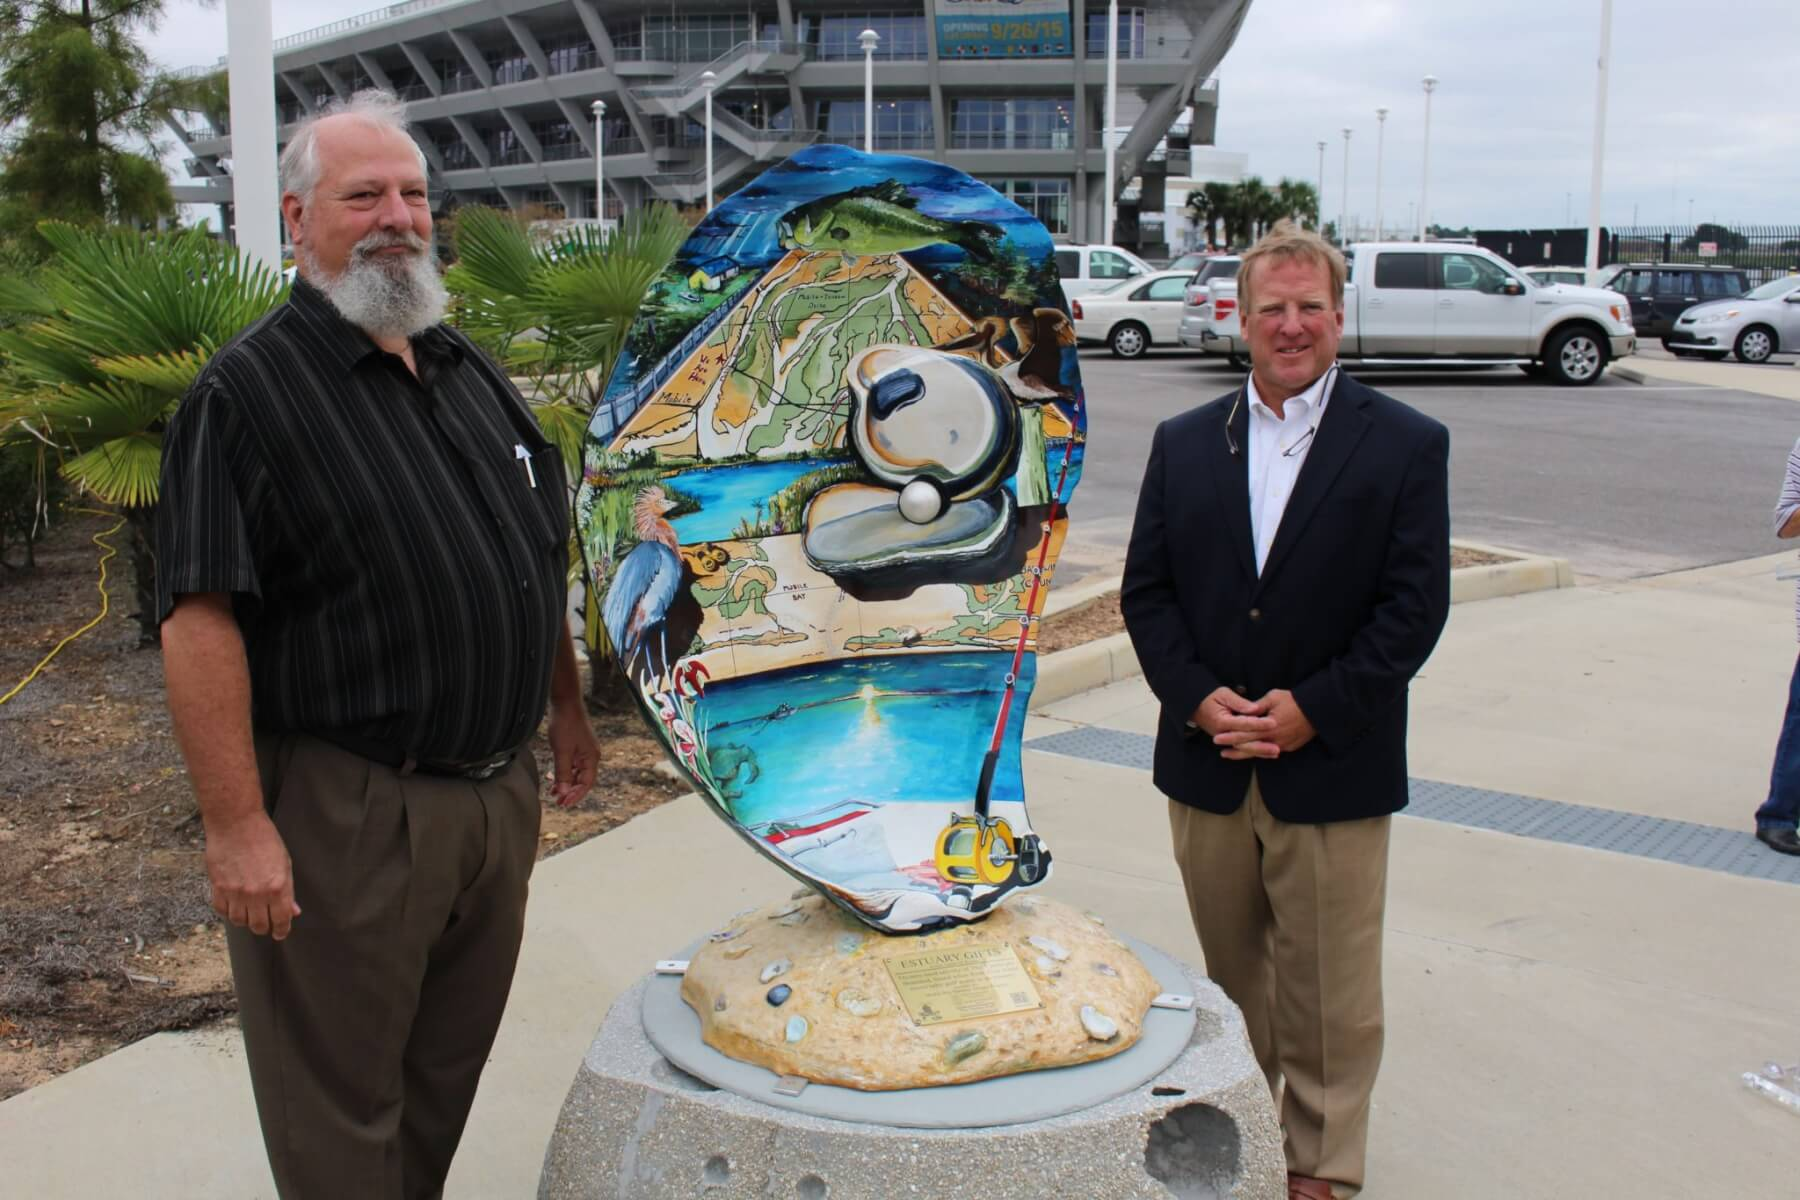 Oyster trail gets new piece of artwork